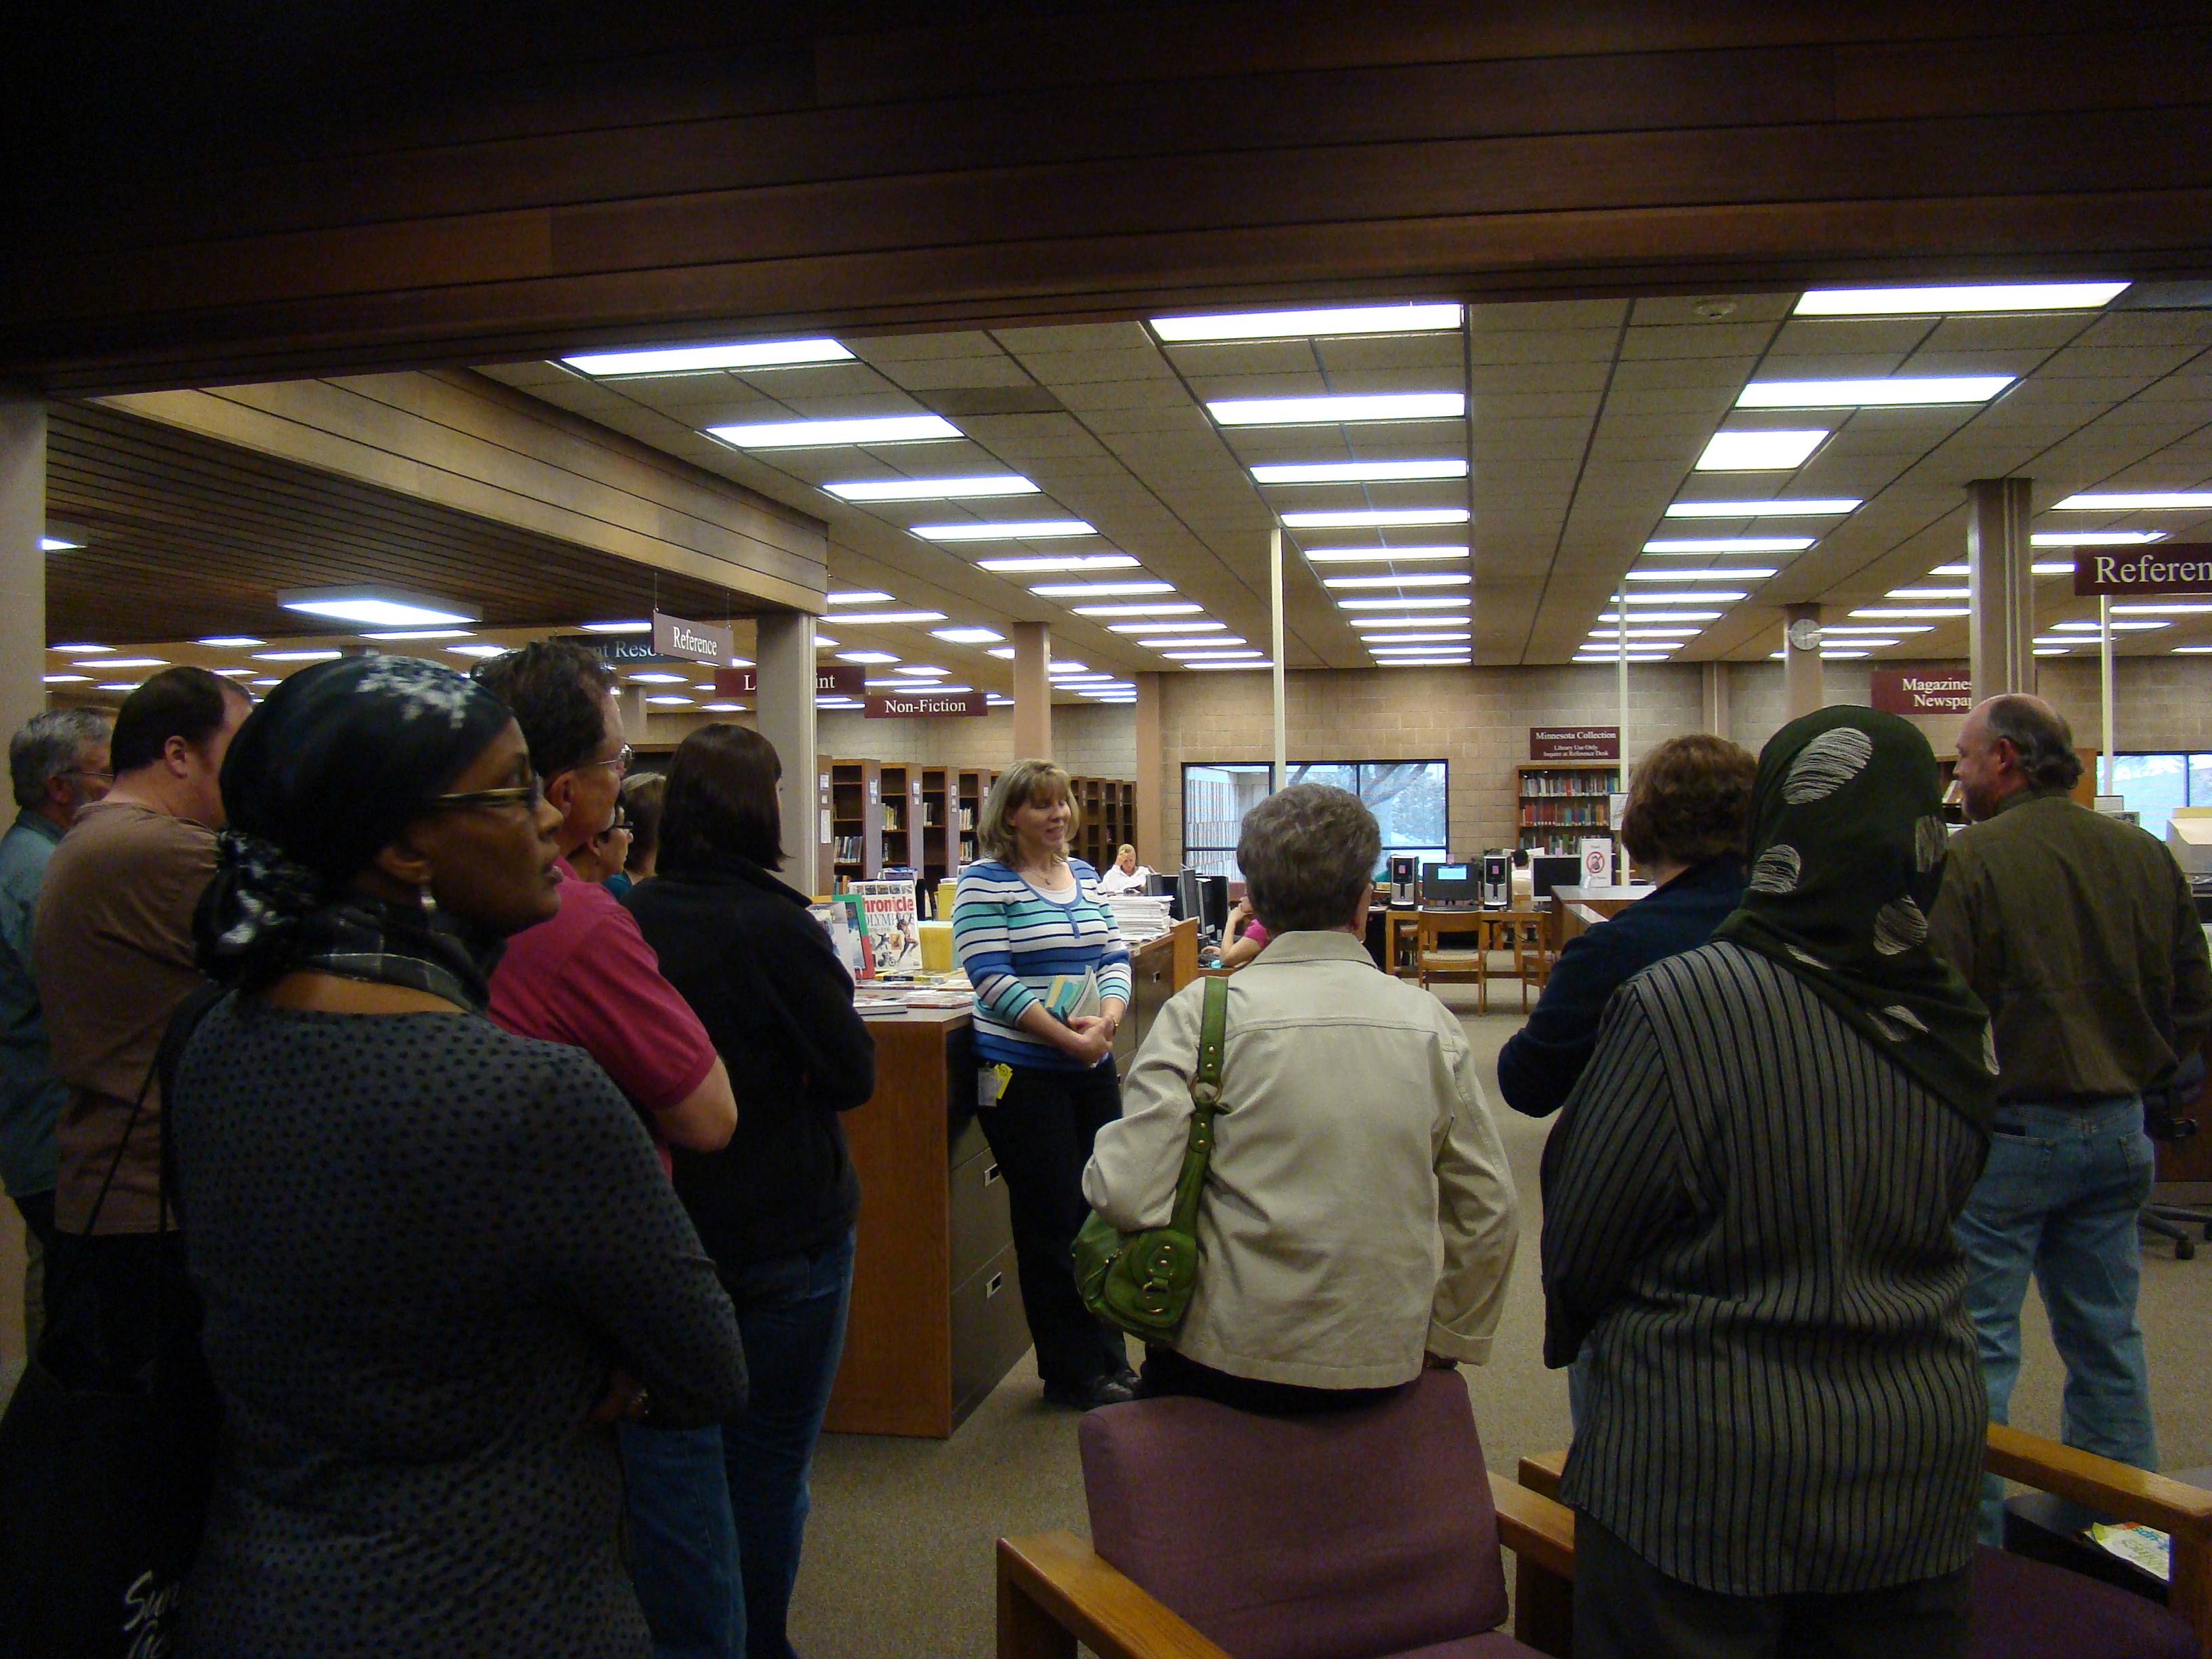 Tour of the Blue Earth County Library in Mankato with Citizens Academy participants.